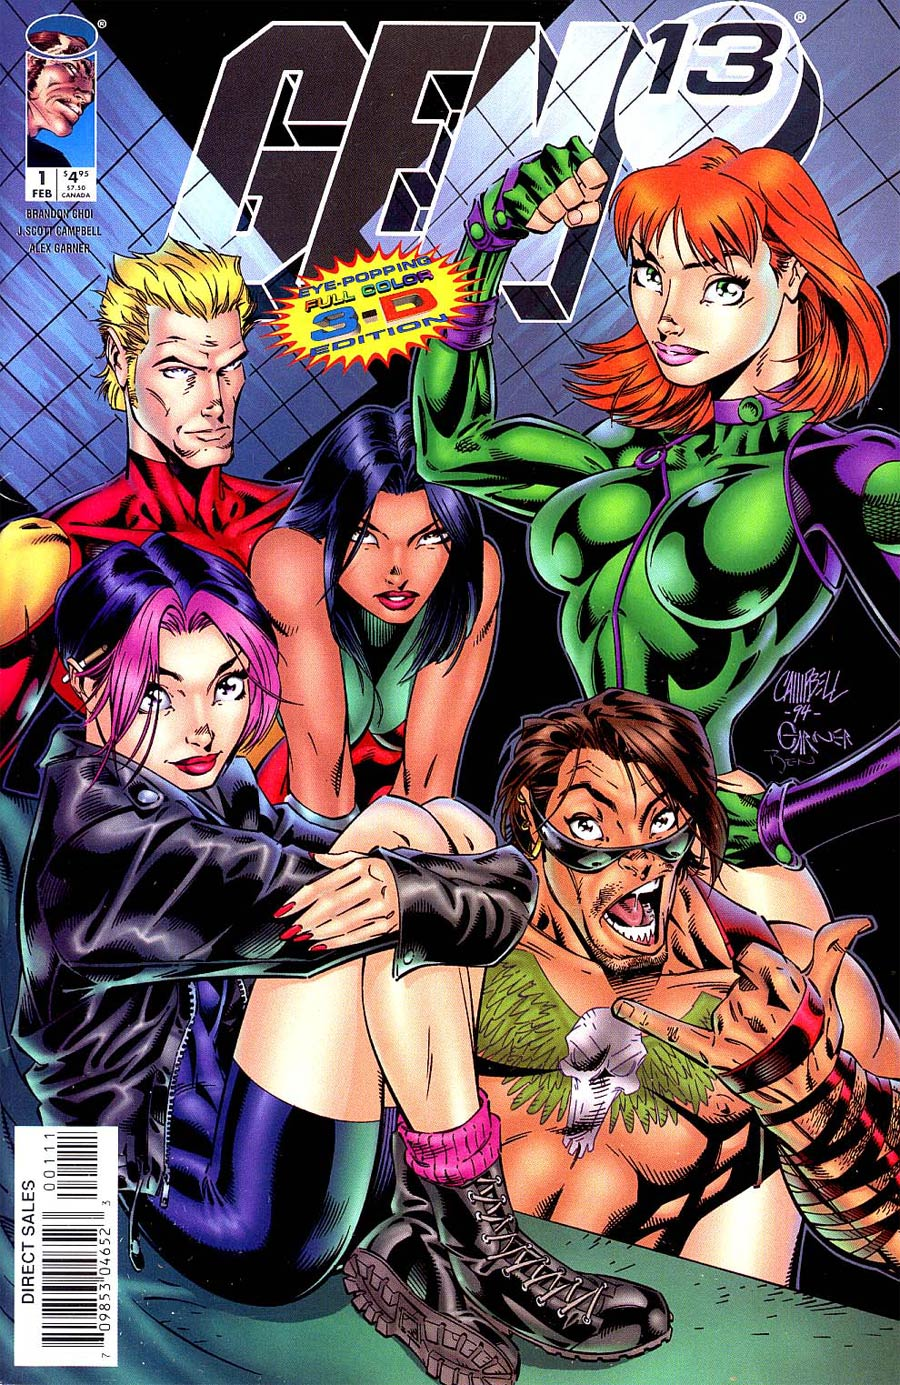 Gen 13 3-D #1 Cover A With Glasses